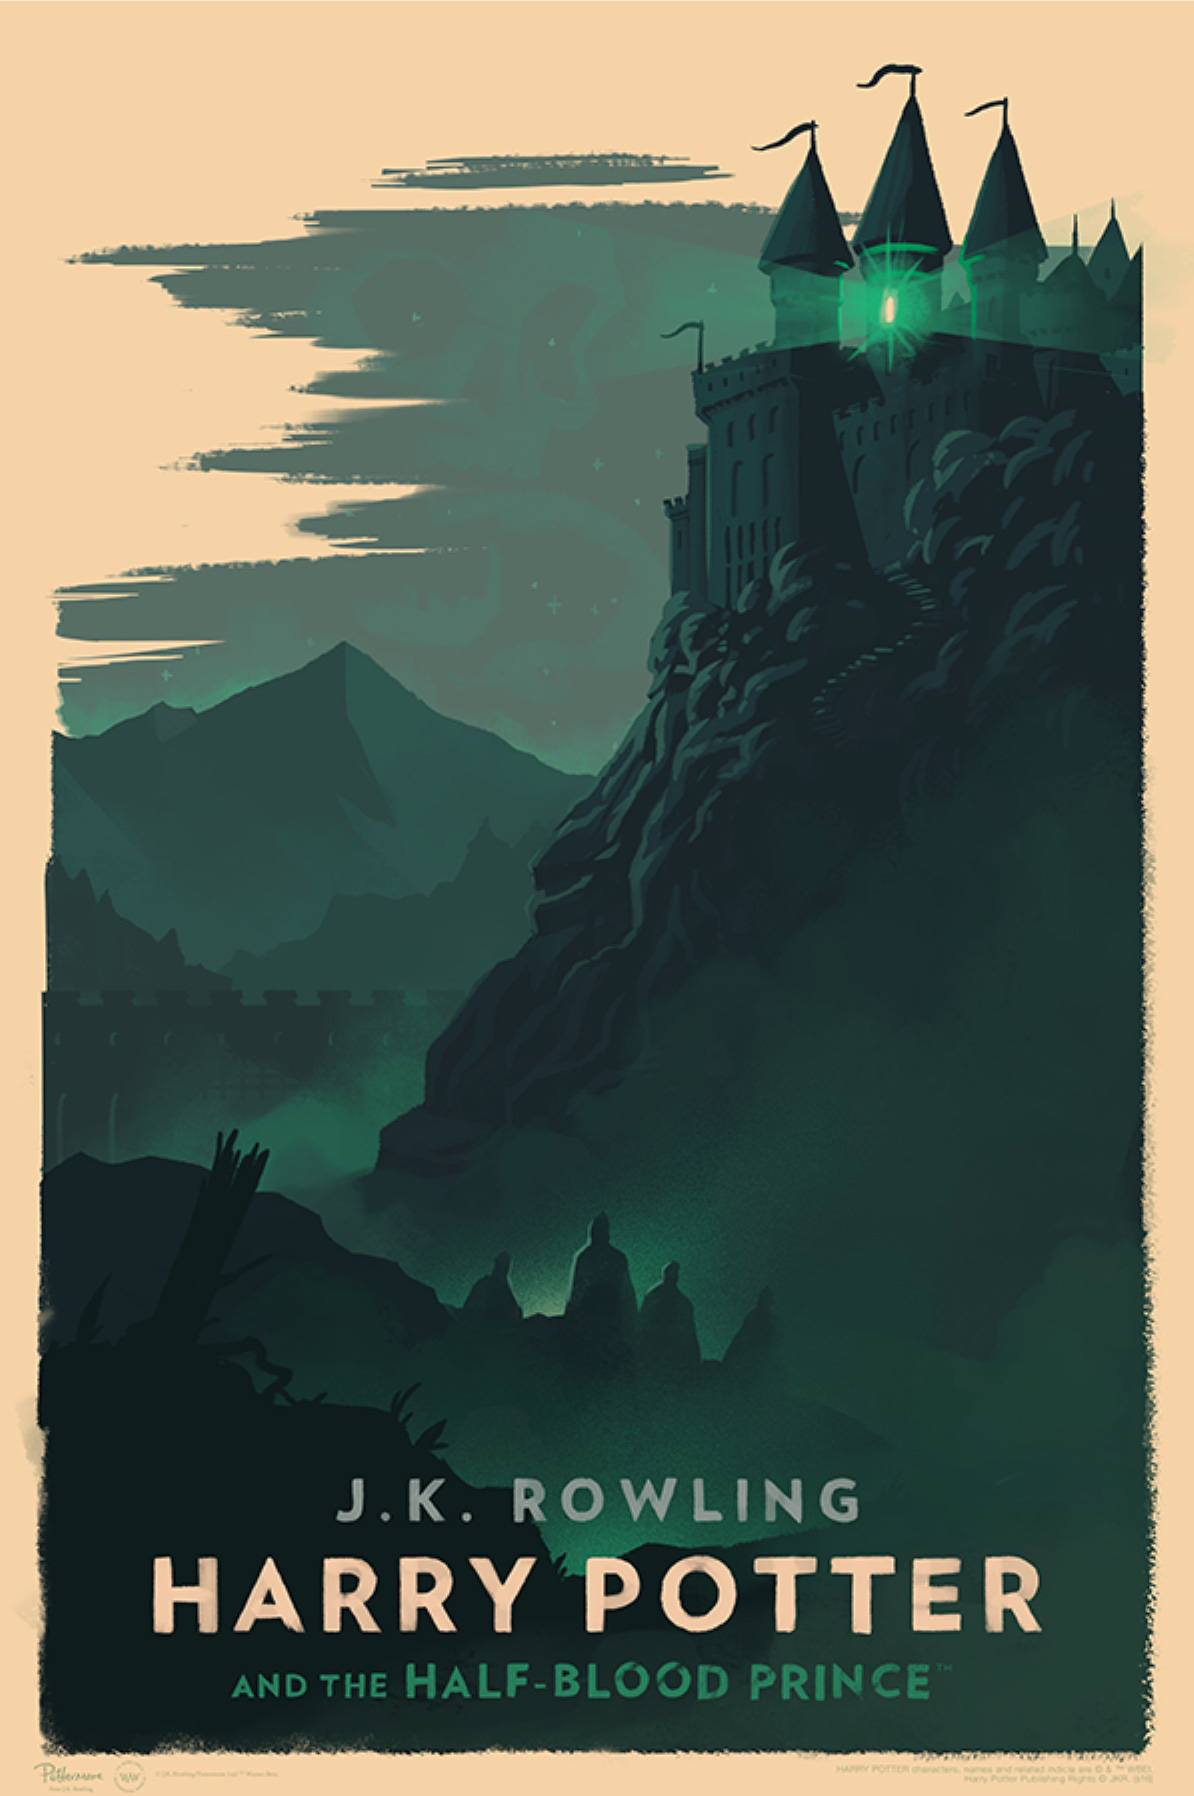 'Half-Blood Prince' Olly Moss Hogwarts poster